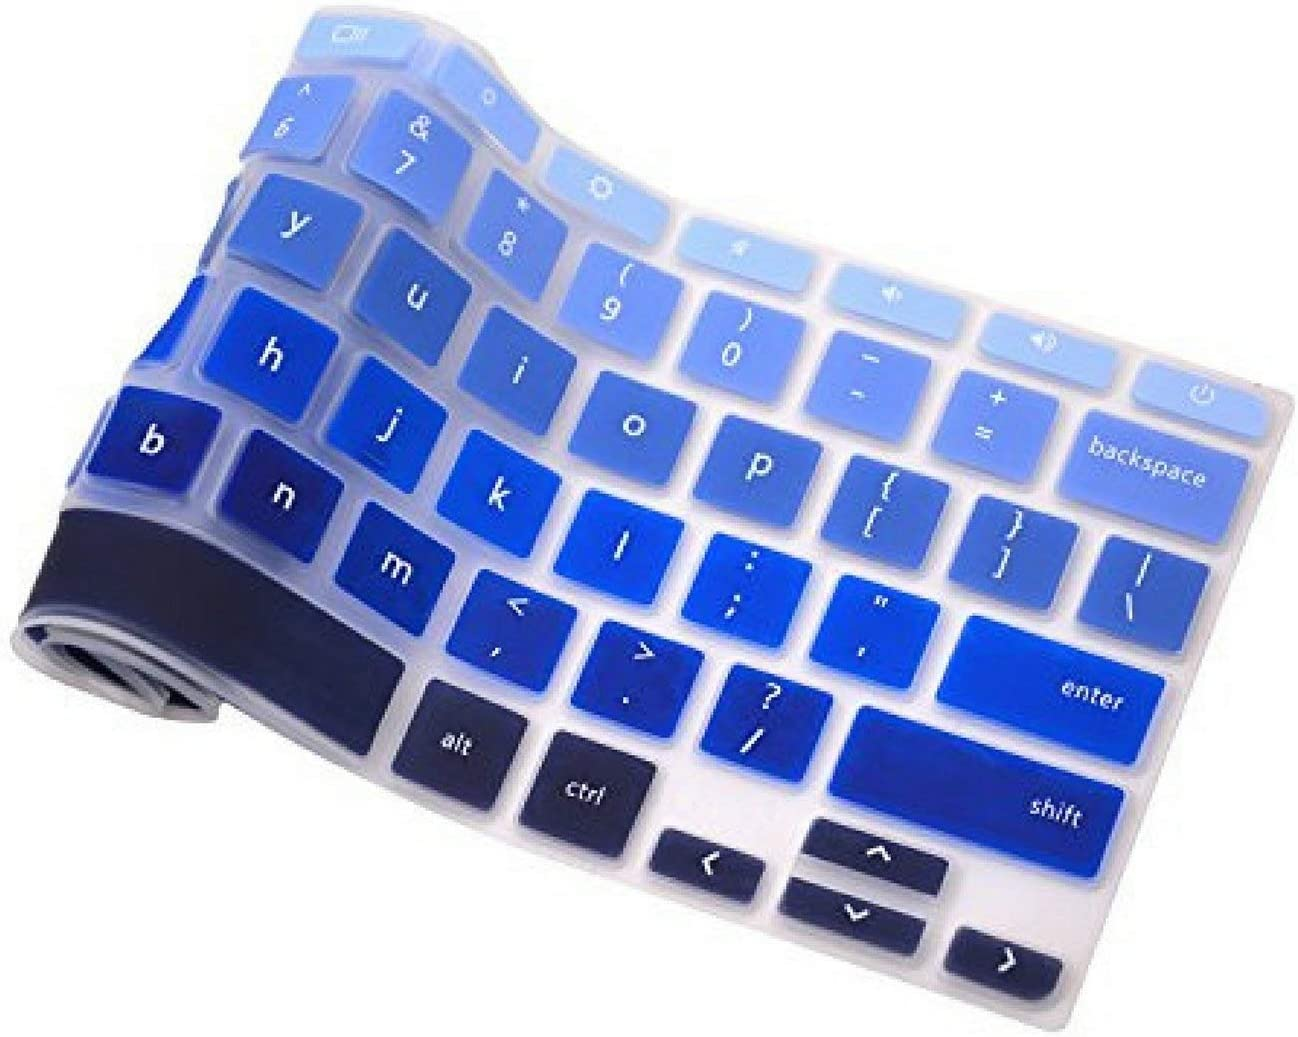 Casiii Keyboard Cover for Acer Chromebook 15 Inch Back to School Models CB5-571 15 Ombre Blue C910 CB3-531 Silicone Skin Laptops Accessories